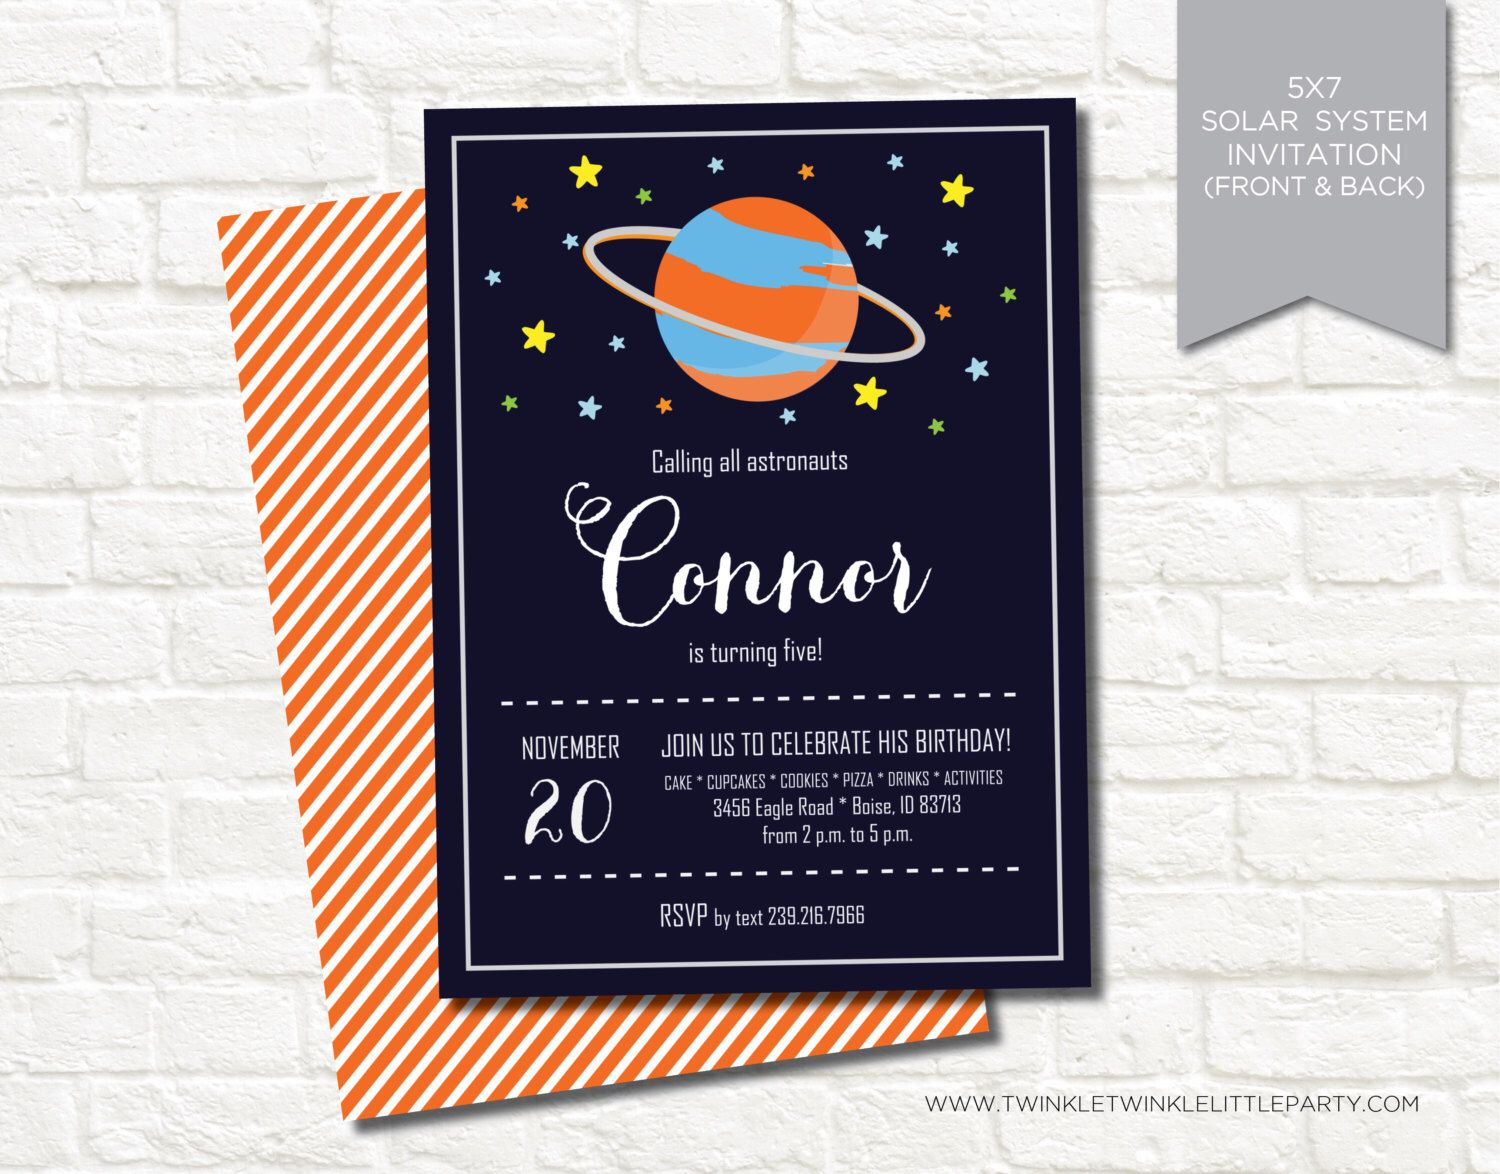 Solar System Outer Space Digital Printable Birthday Invitation by twinklelittleparty on Etsy https://www.etsy.com/listing/151055293/solar-system-outer-space-digital